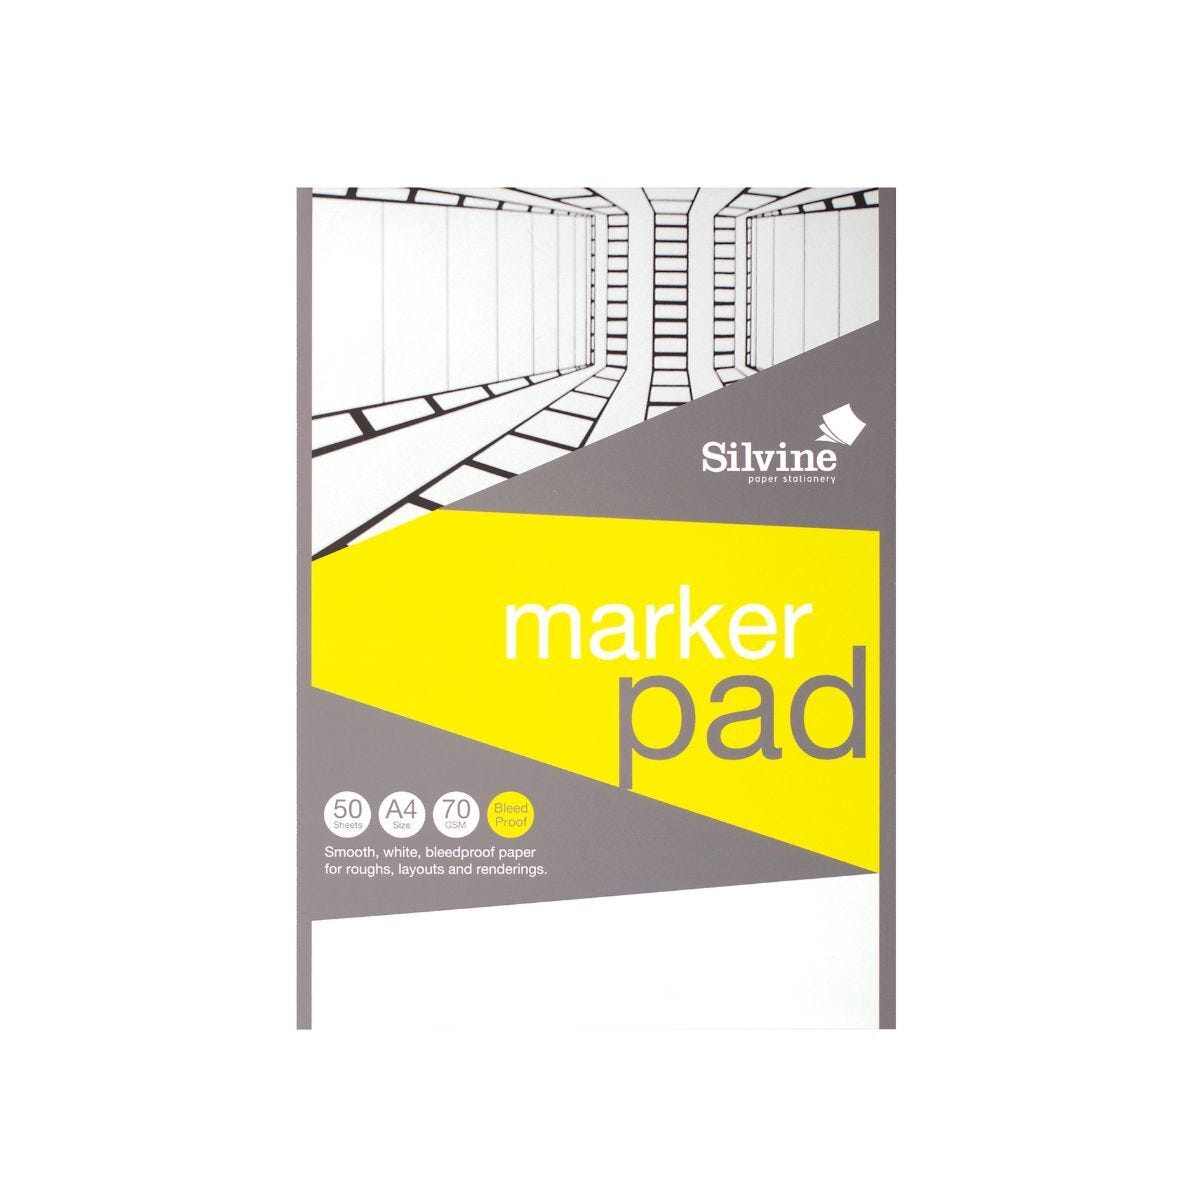 Silvine A4 Marker Bleed proof Pad 50 Sheets 70gsm